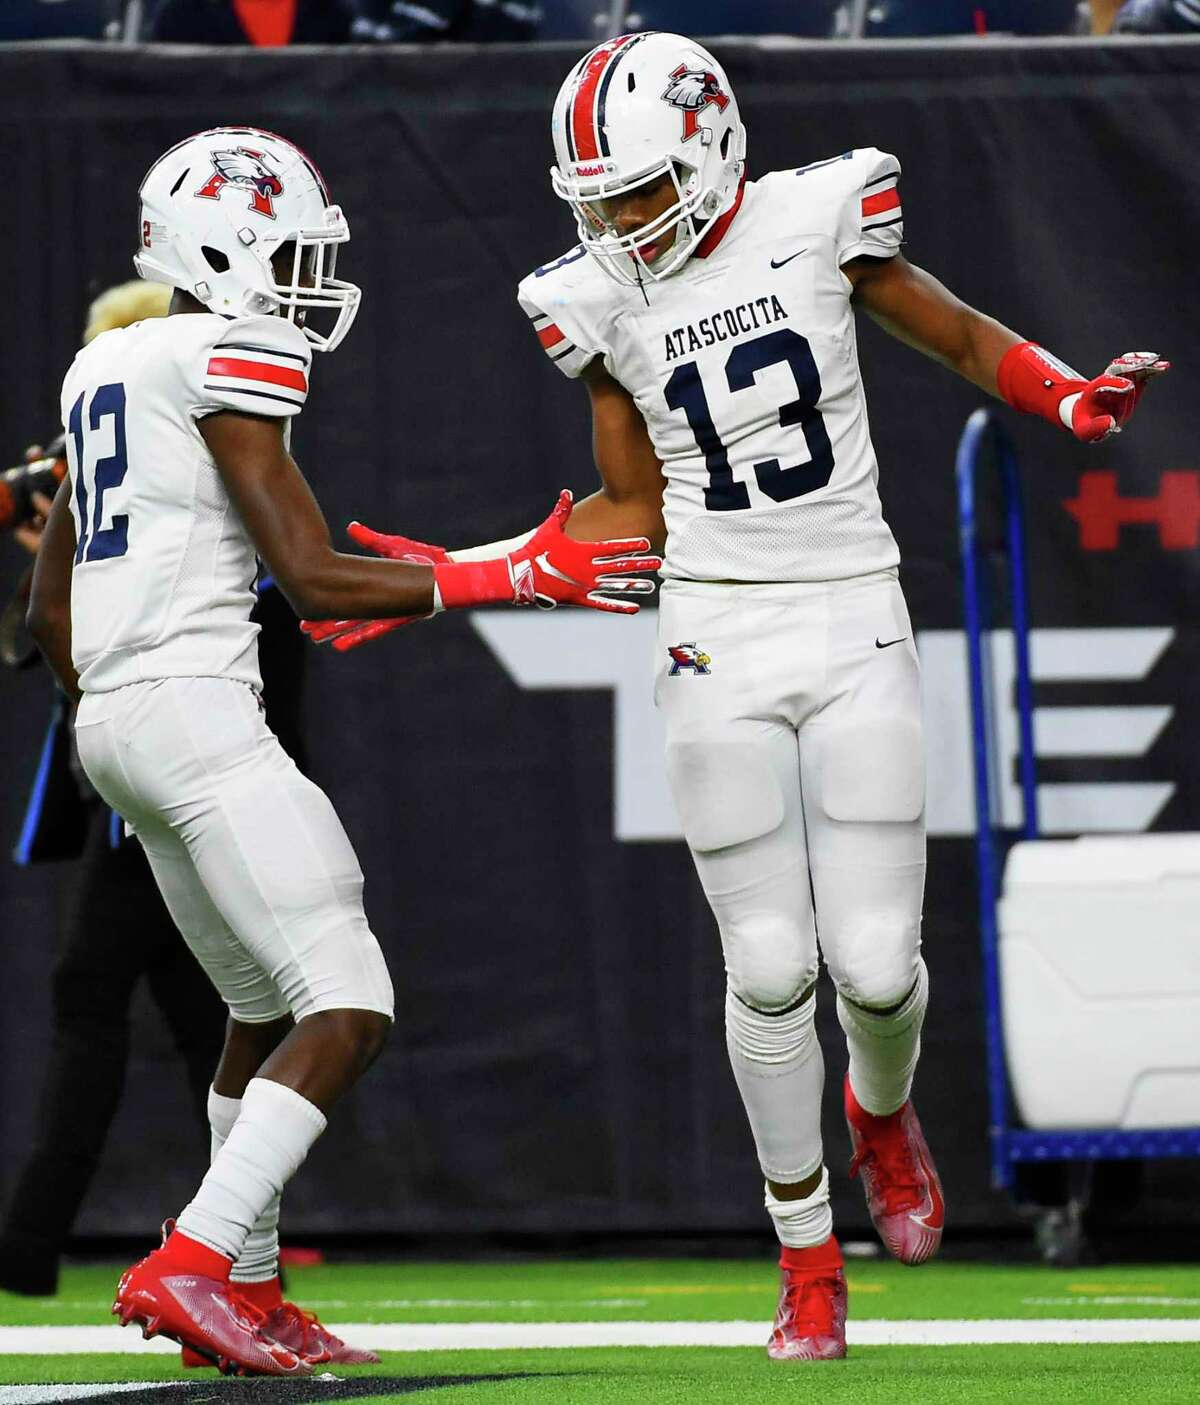 Atascocita wide receiver Landed King (13) celebrates his touchdown with Keith Wheeler during the second half of a high school football playoff game against Dickinson, Saturday, Nov. 23, 2019, in Houston.